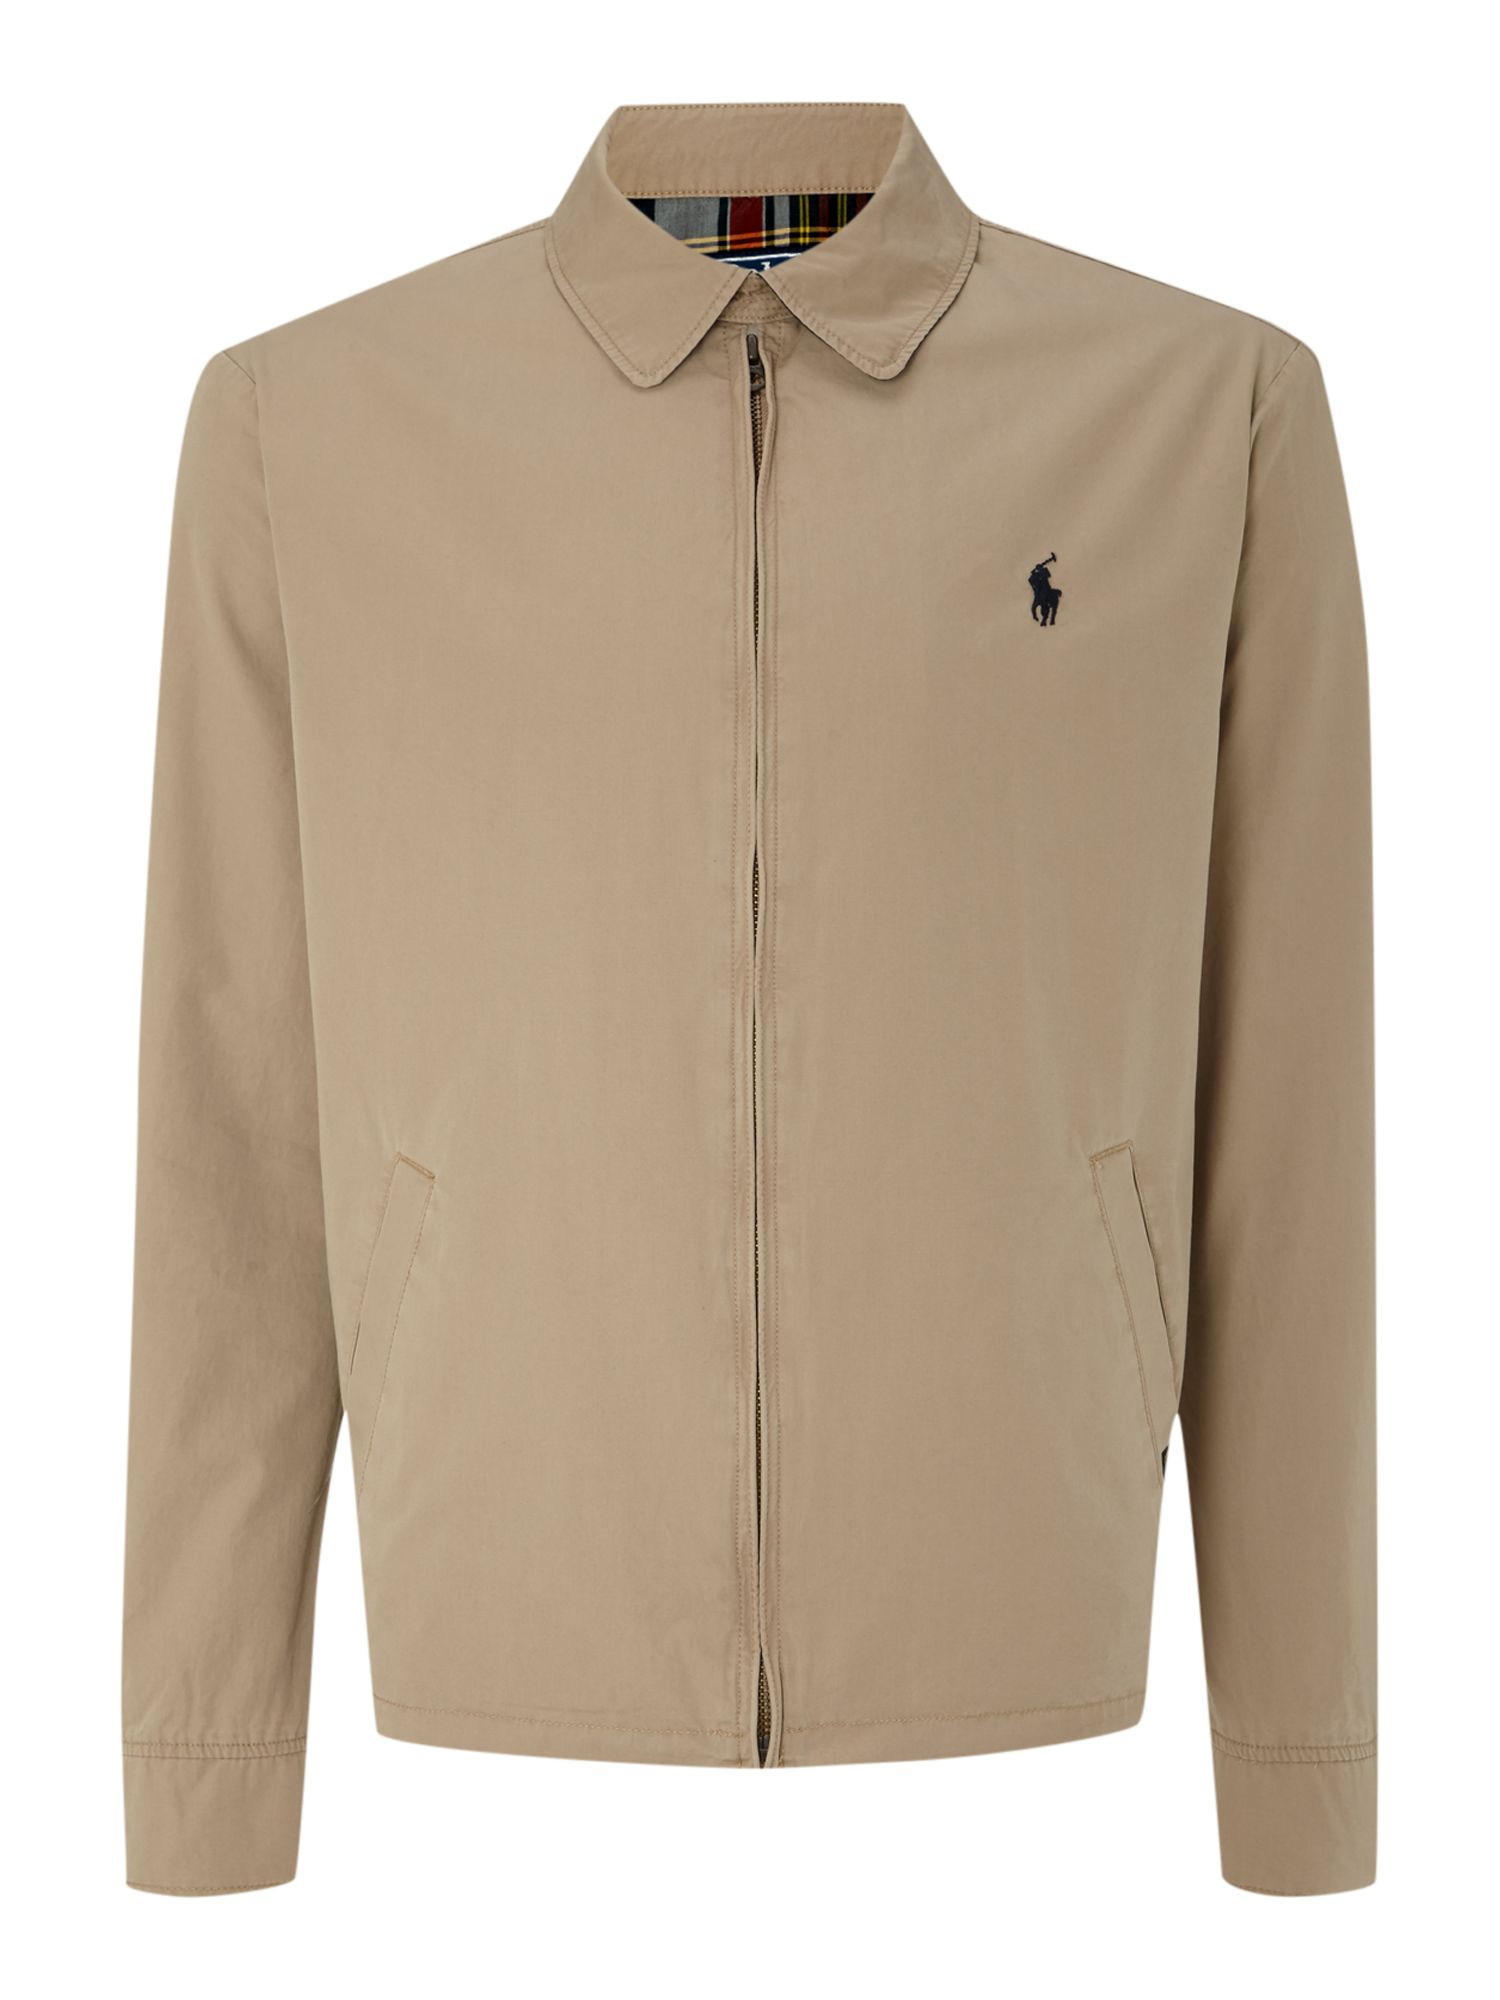 Polo ralph lauren Classic Landon Windbreaker Jacket in Natural for ...